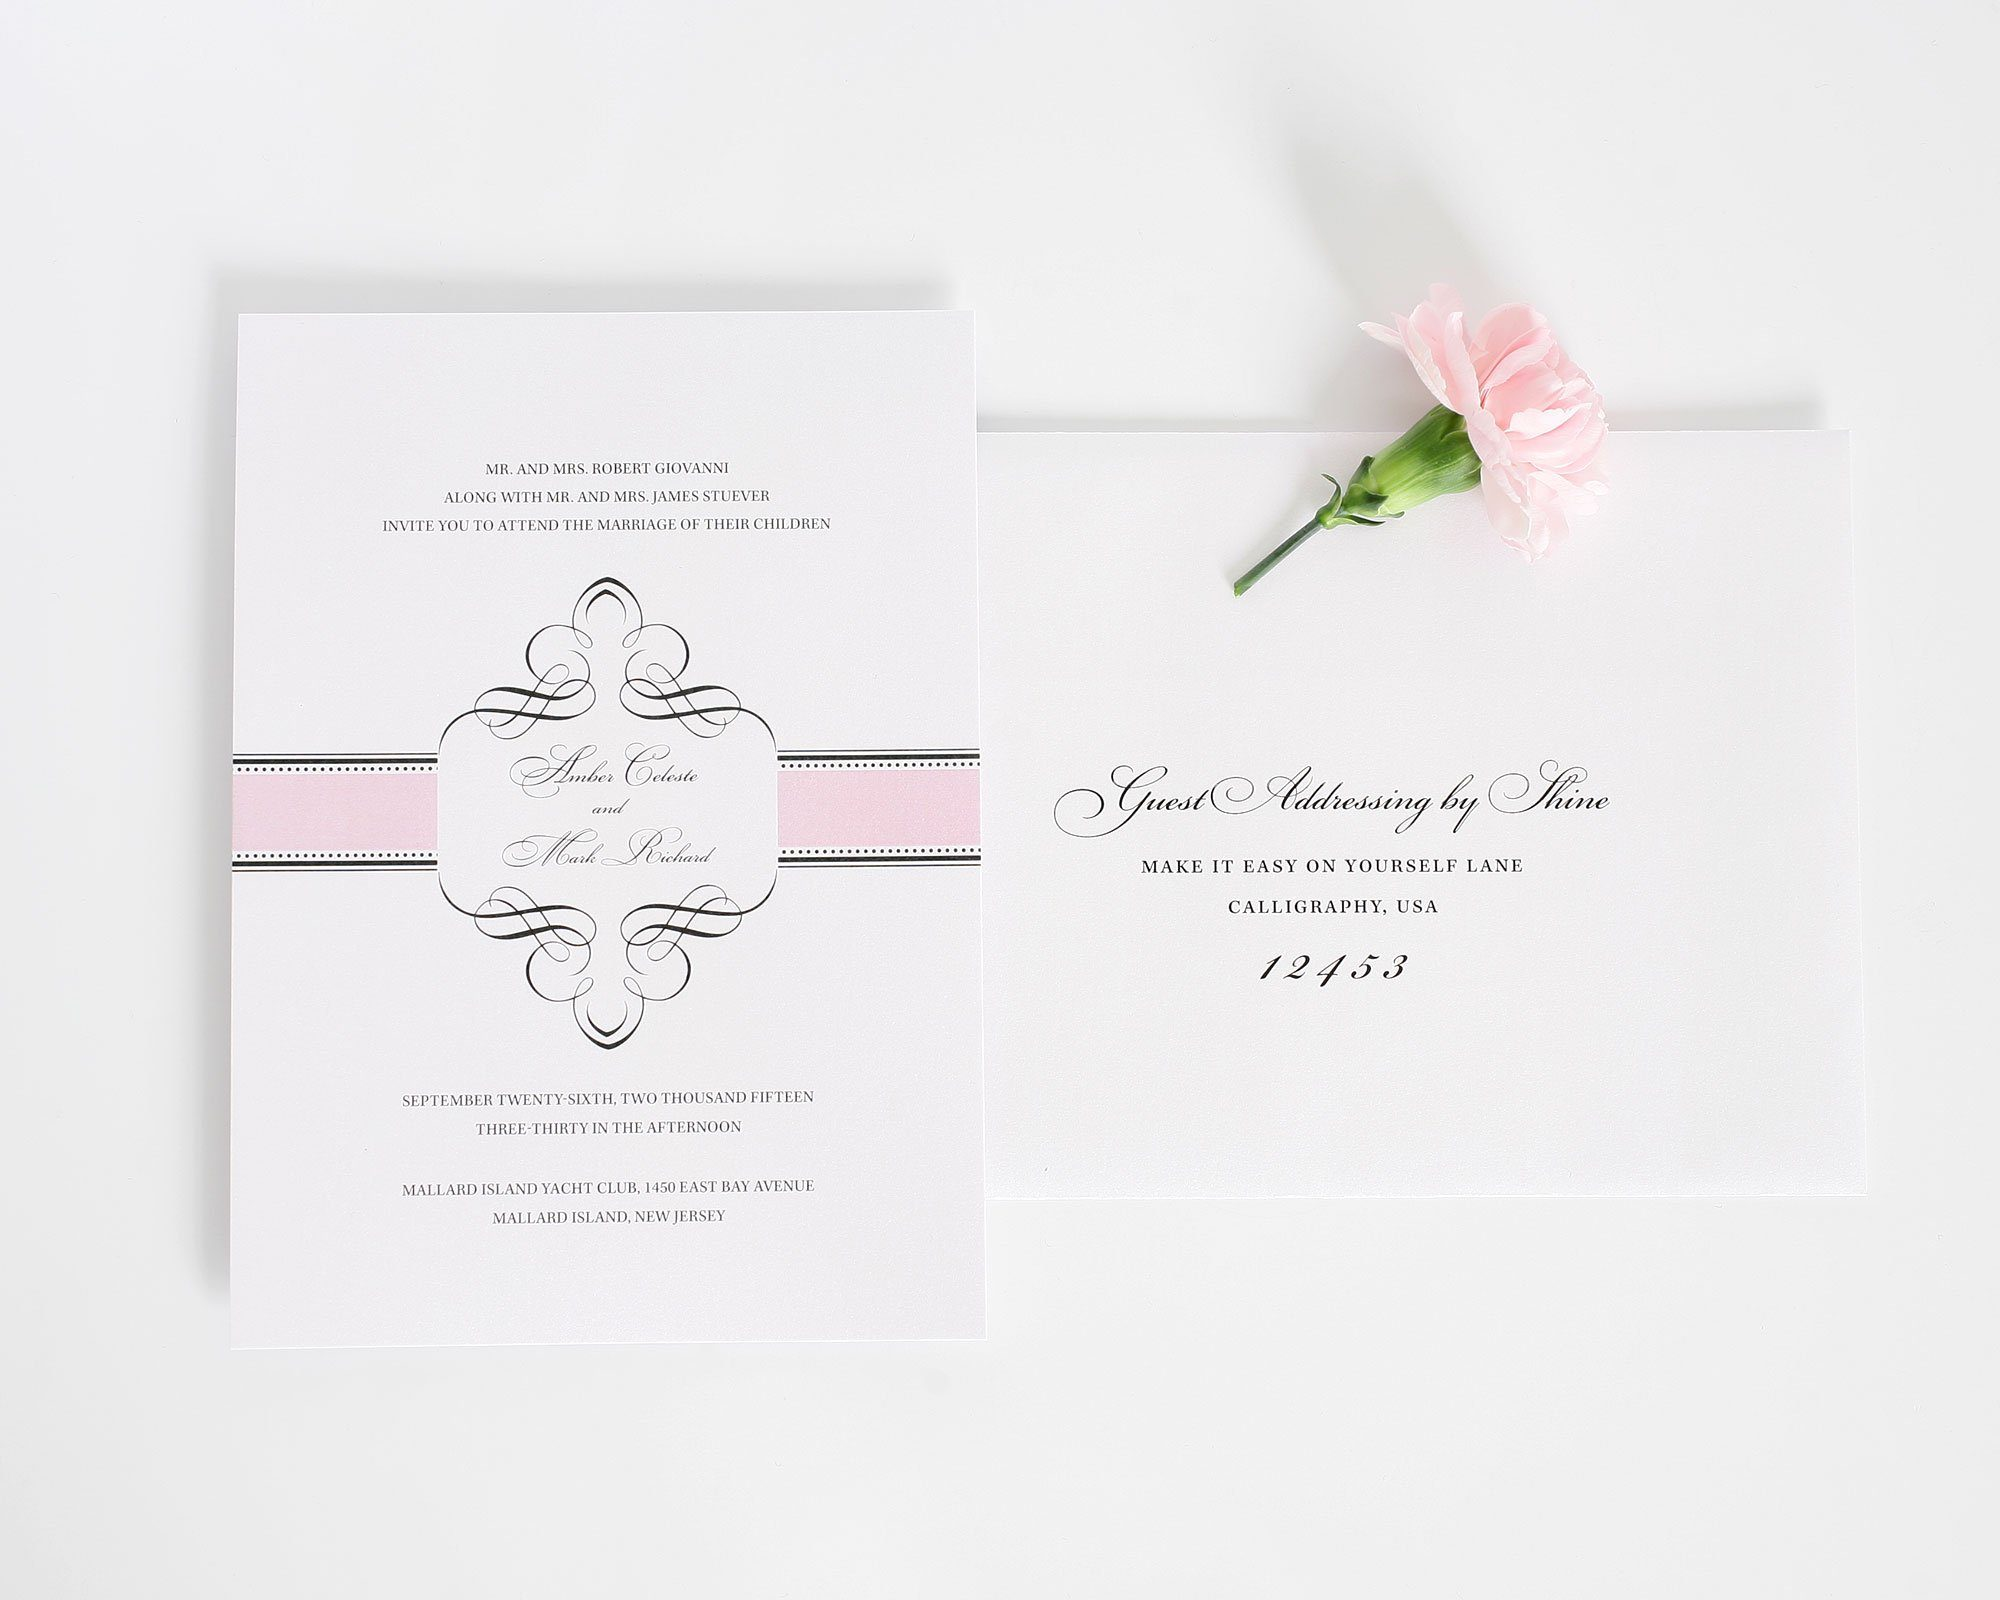 Vintage Wedding Invitations in pink with swashes